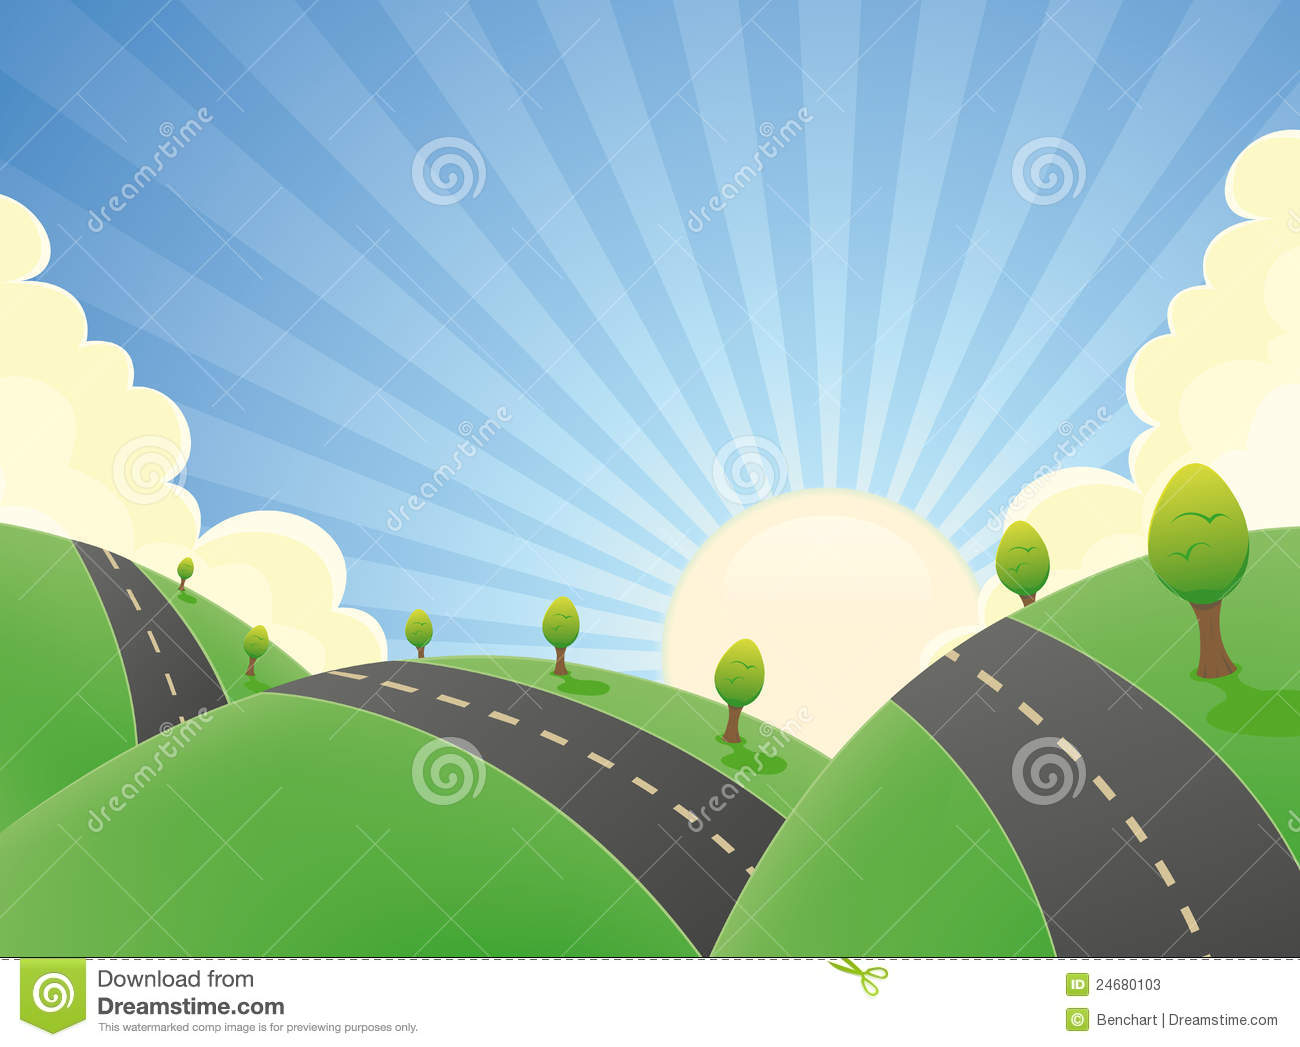 Illustration of a cartoon rounded road snaking in a spring or summer ...